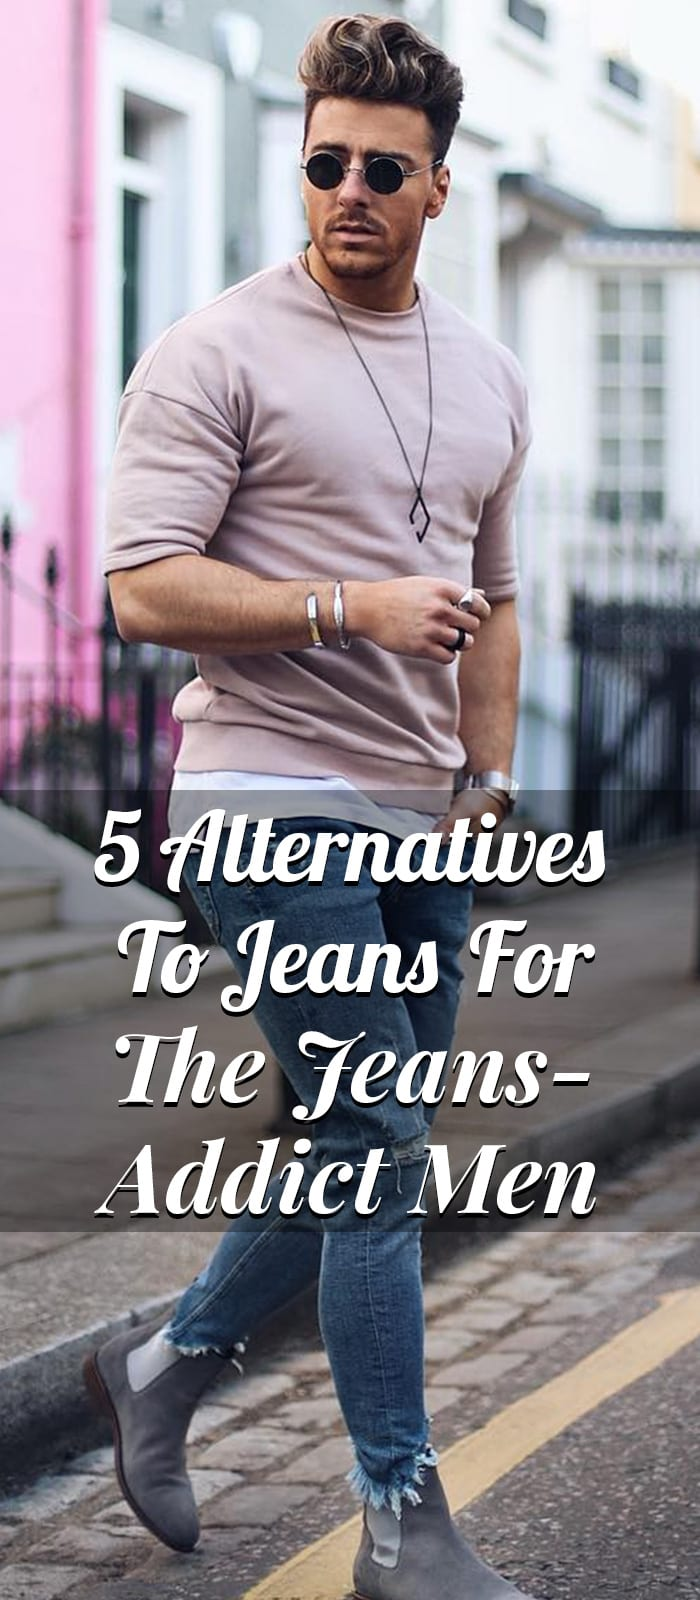 5 Alternatives To Jeans For The Jeans-Addict Men